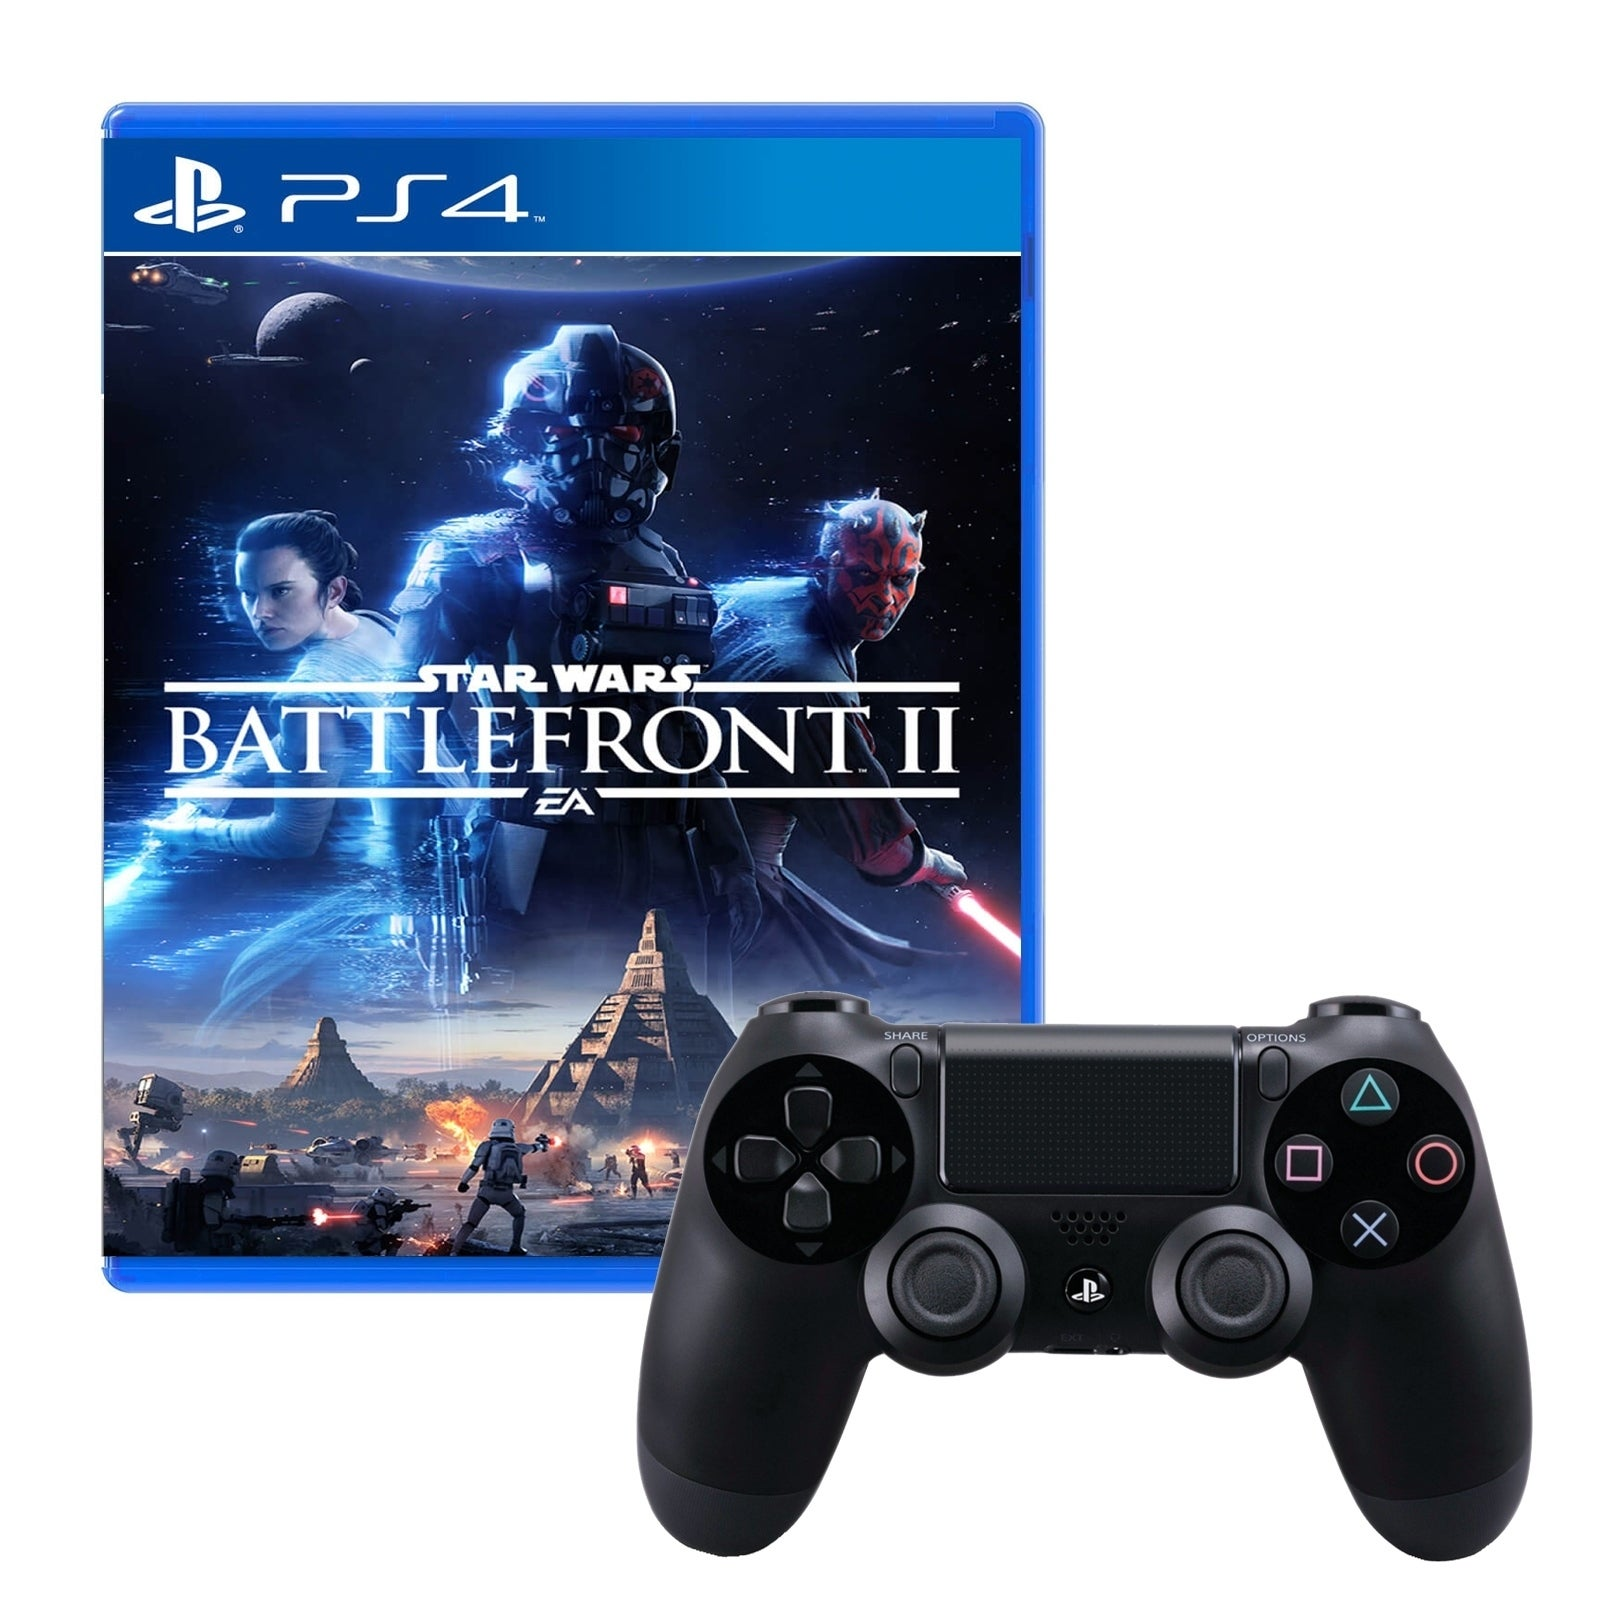 Shop Dualshock 4 Wireless Controller With Star Wars Battlefront 2 Ds4 New Dual Shock Light Blue Model Game Free Shipping Today 18794440